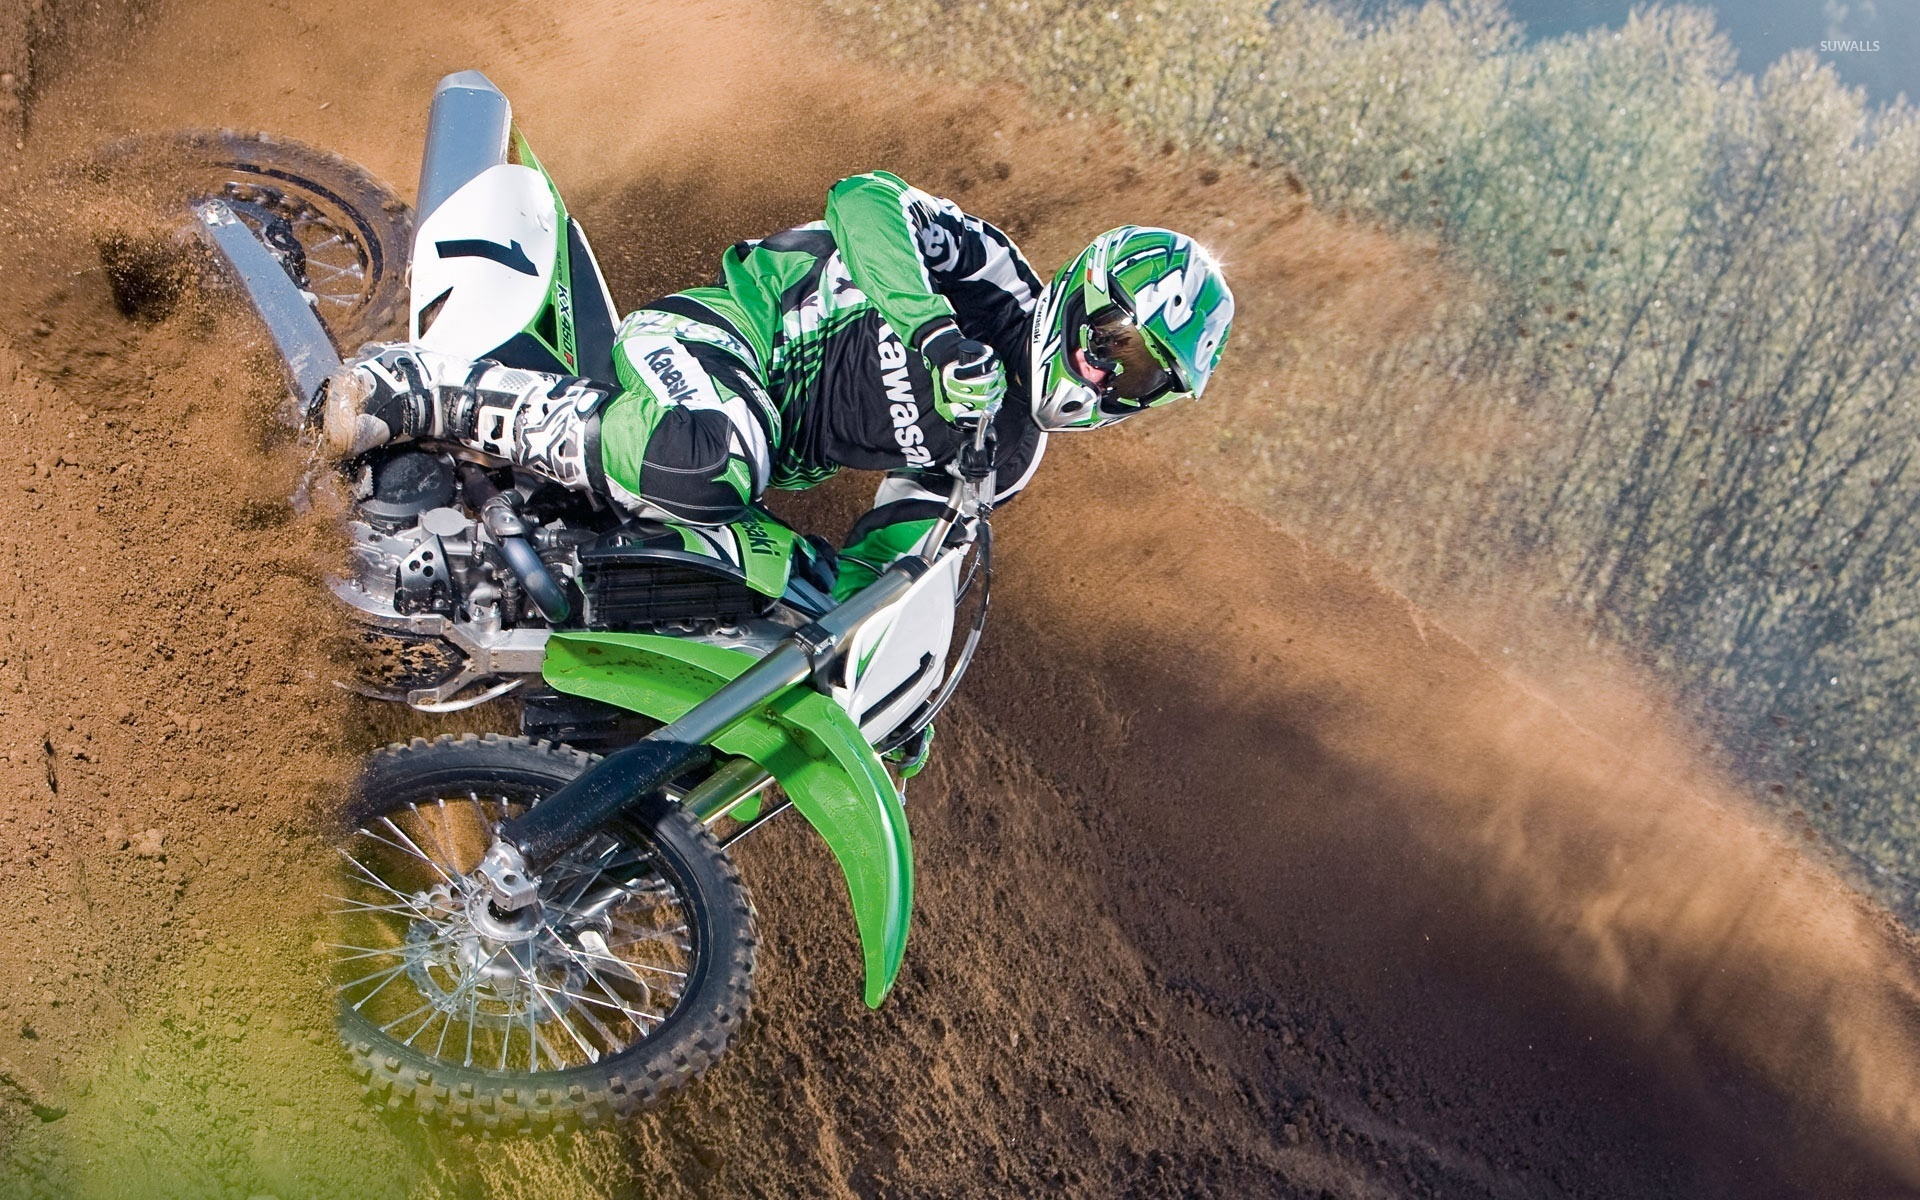 Kawasaki Kx450f 2 Wallpaper Motorcycle Wallpapers 24011